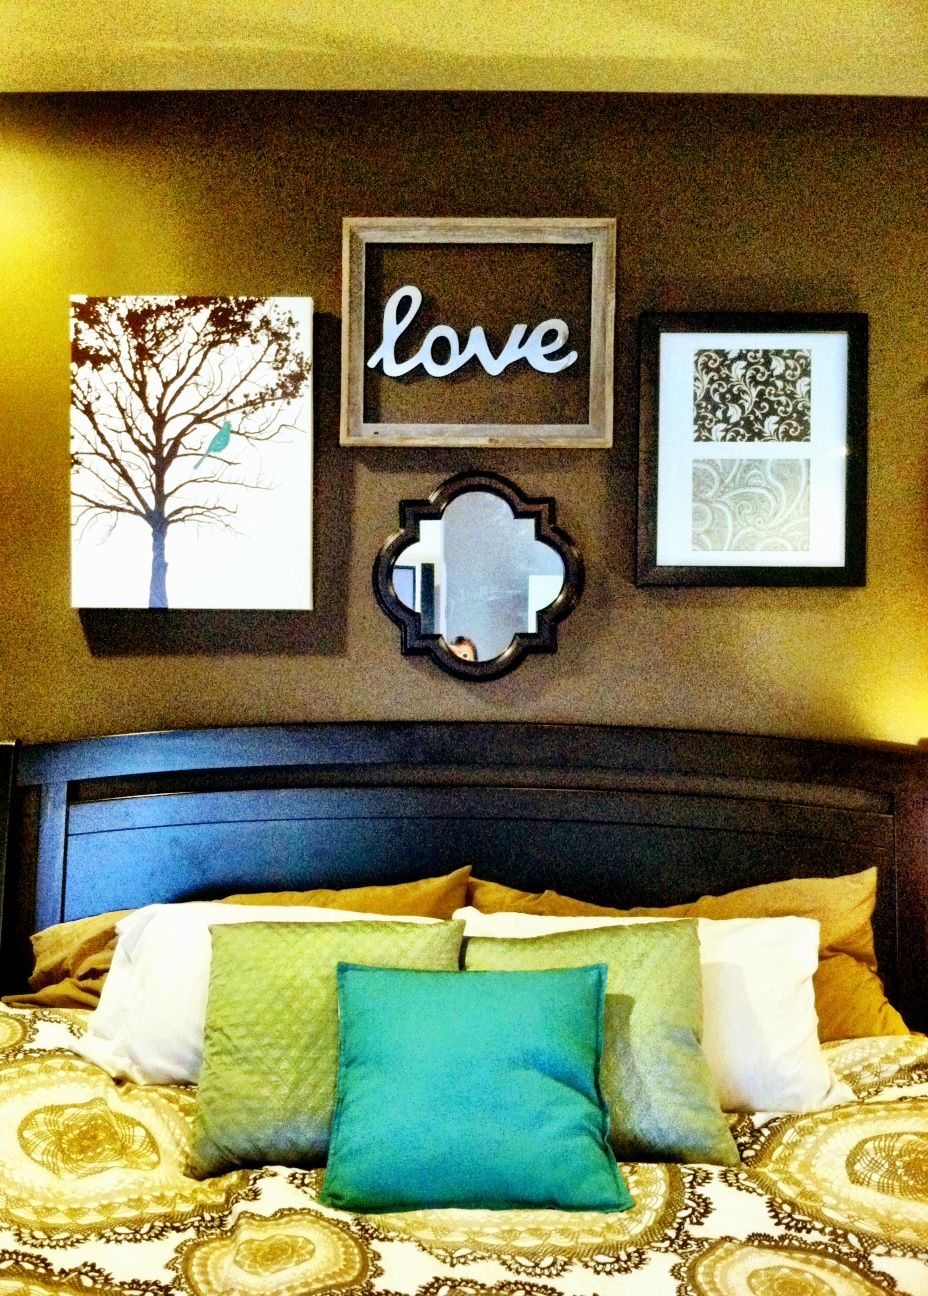 Over bed wall art home bedroom colors u style pinterest